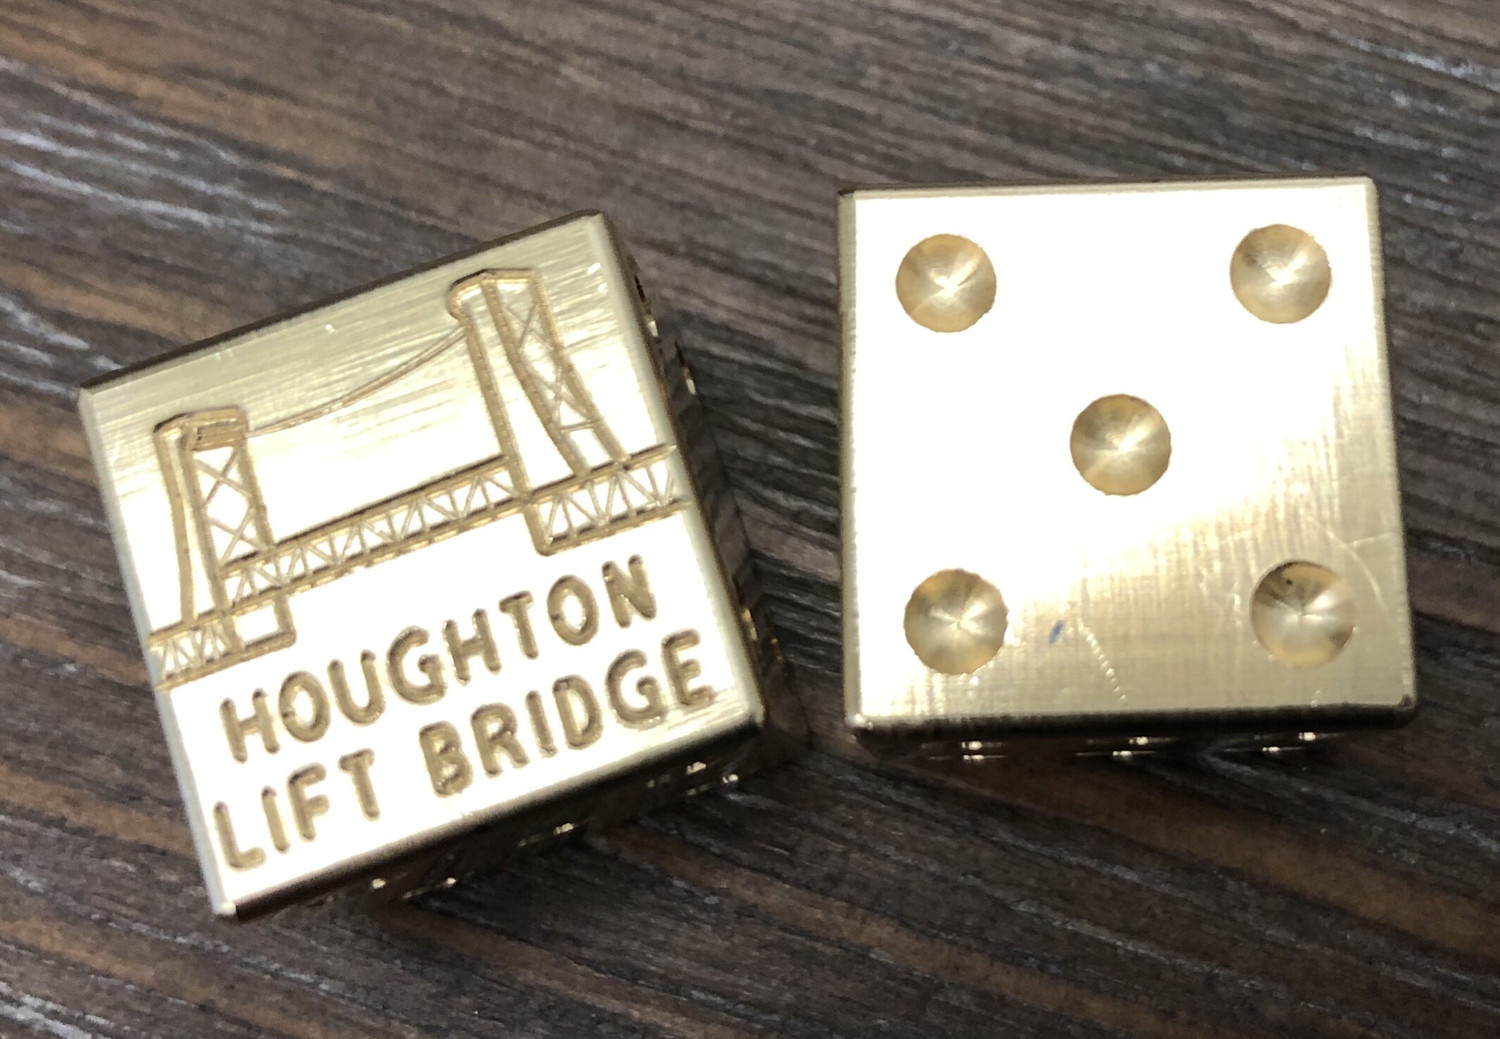 Dice Set - Houghton Lift Bridge (2 Pieces)